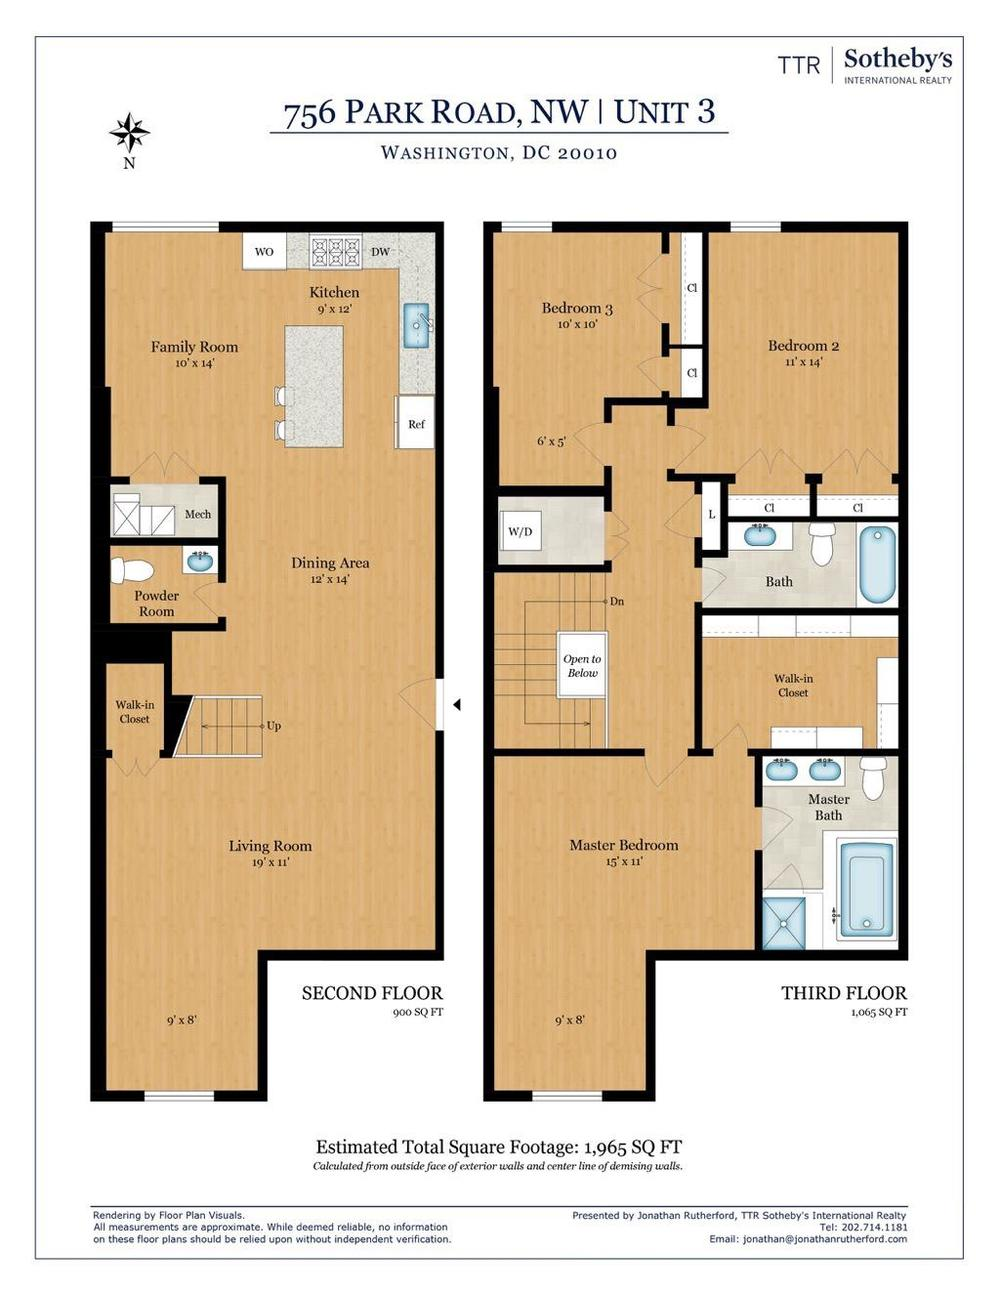 38-Floor Plans for Unit 3.jpg